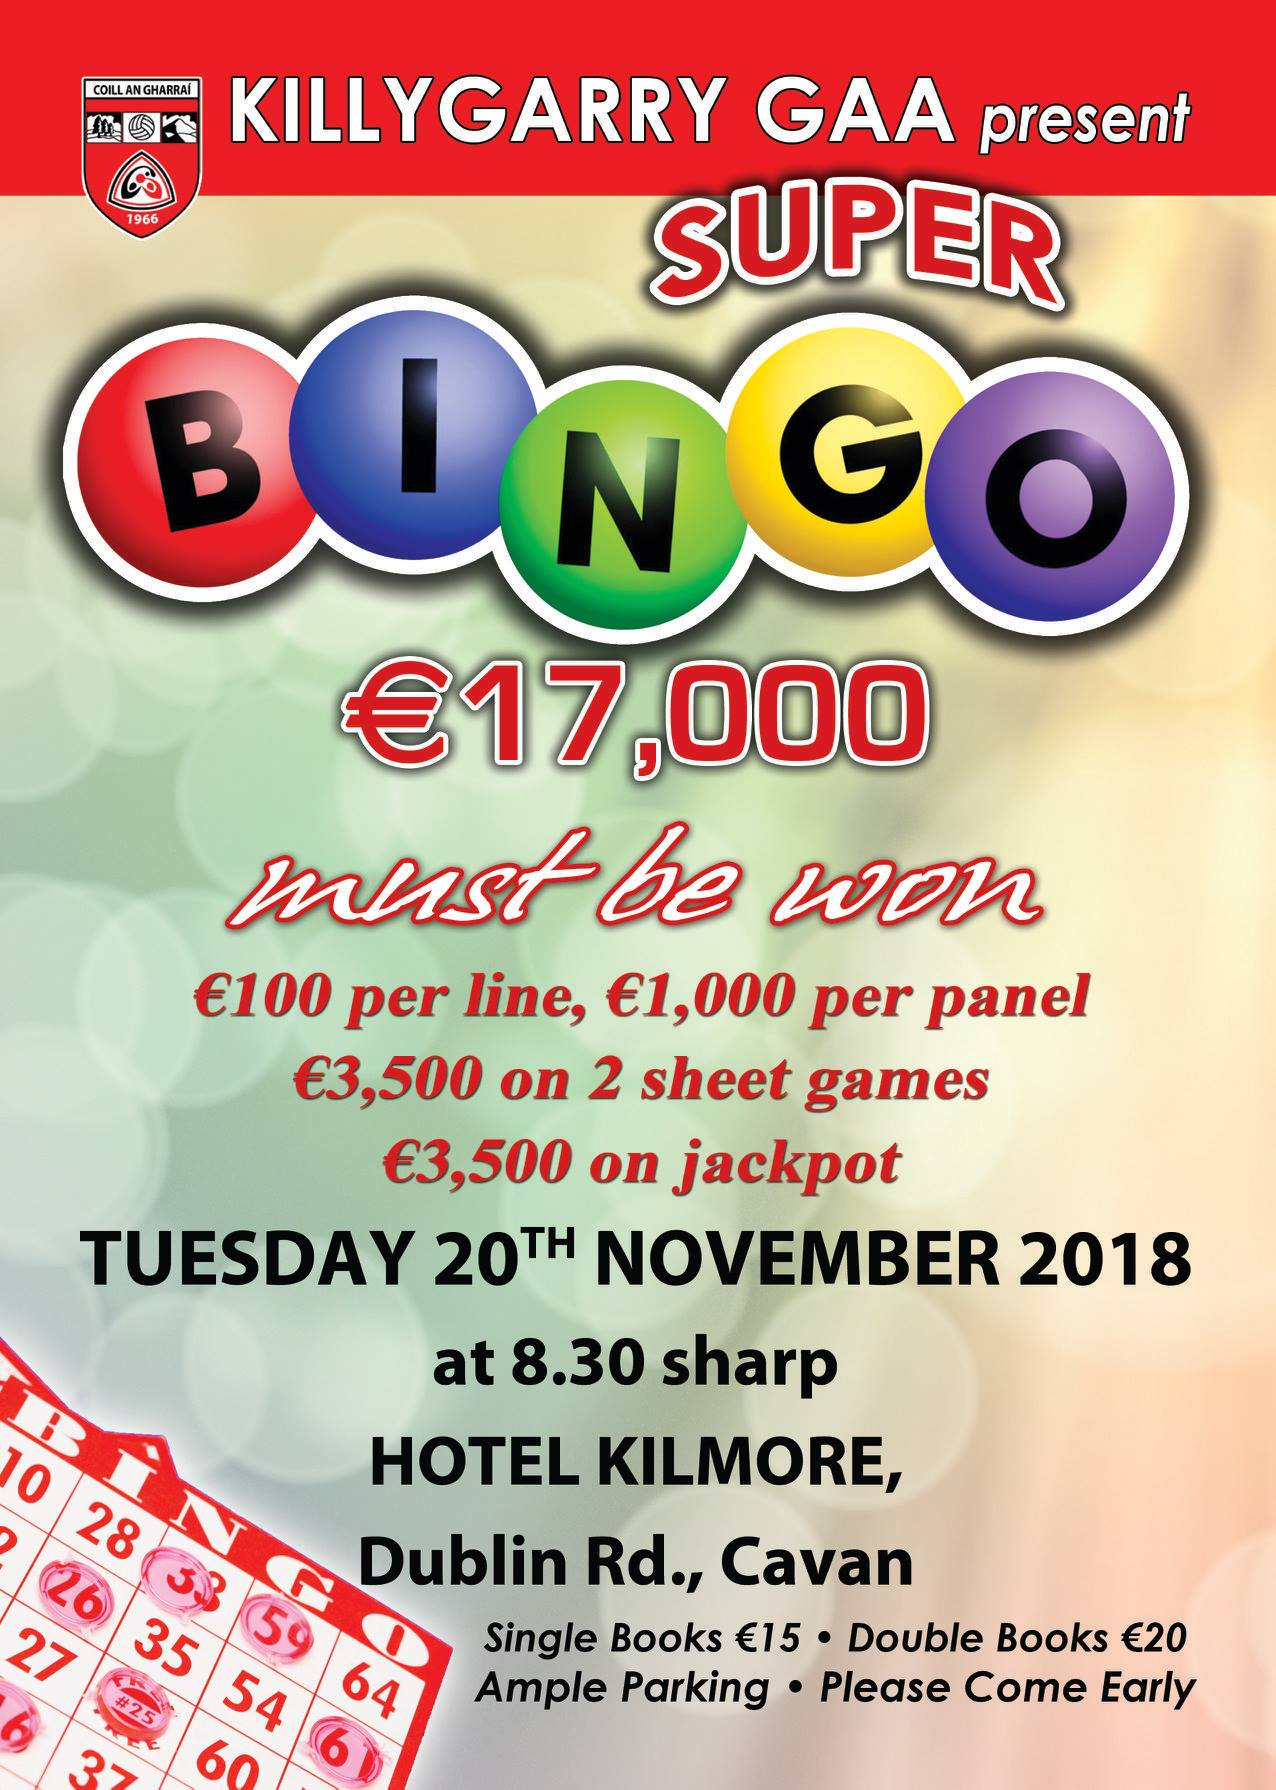 Killygarry Super Bingo